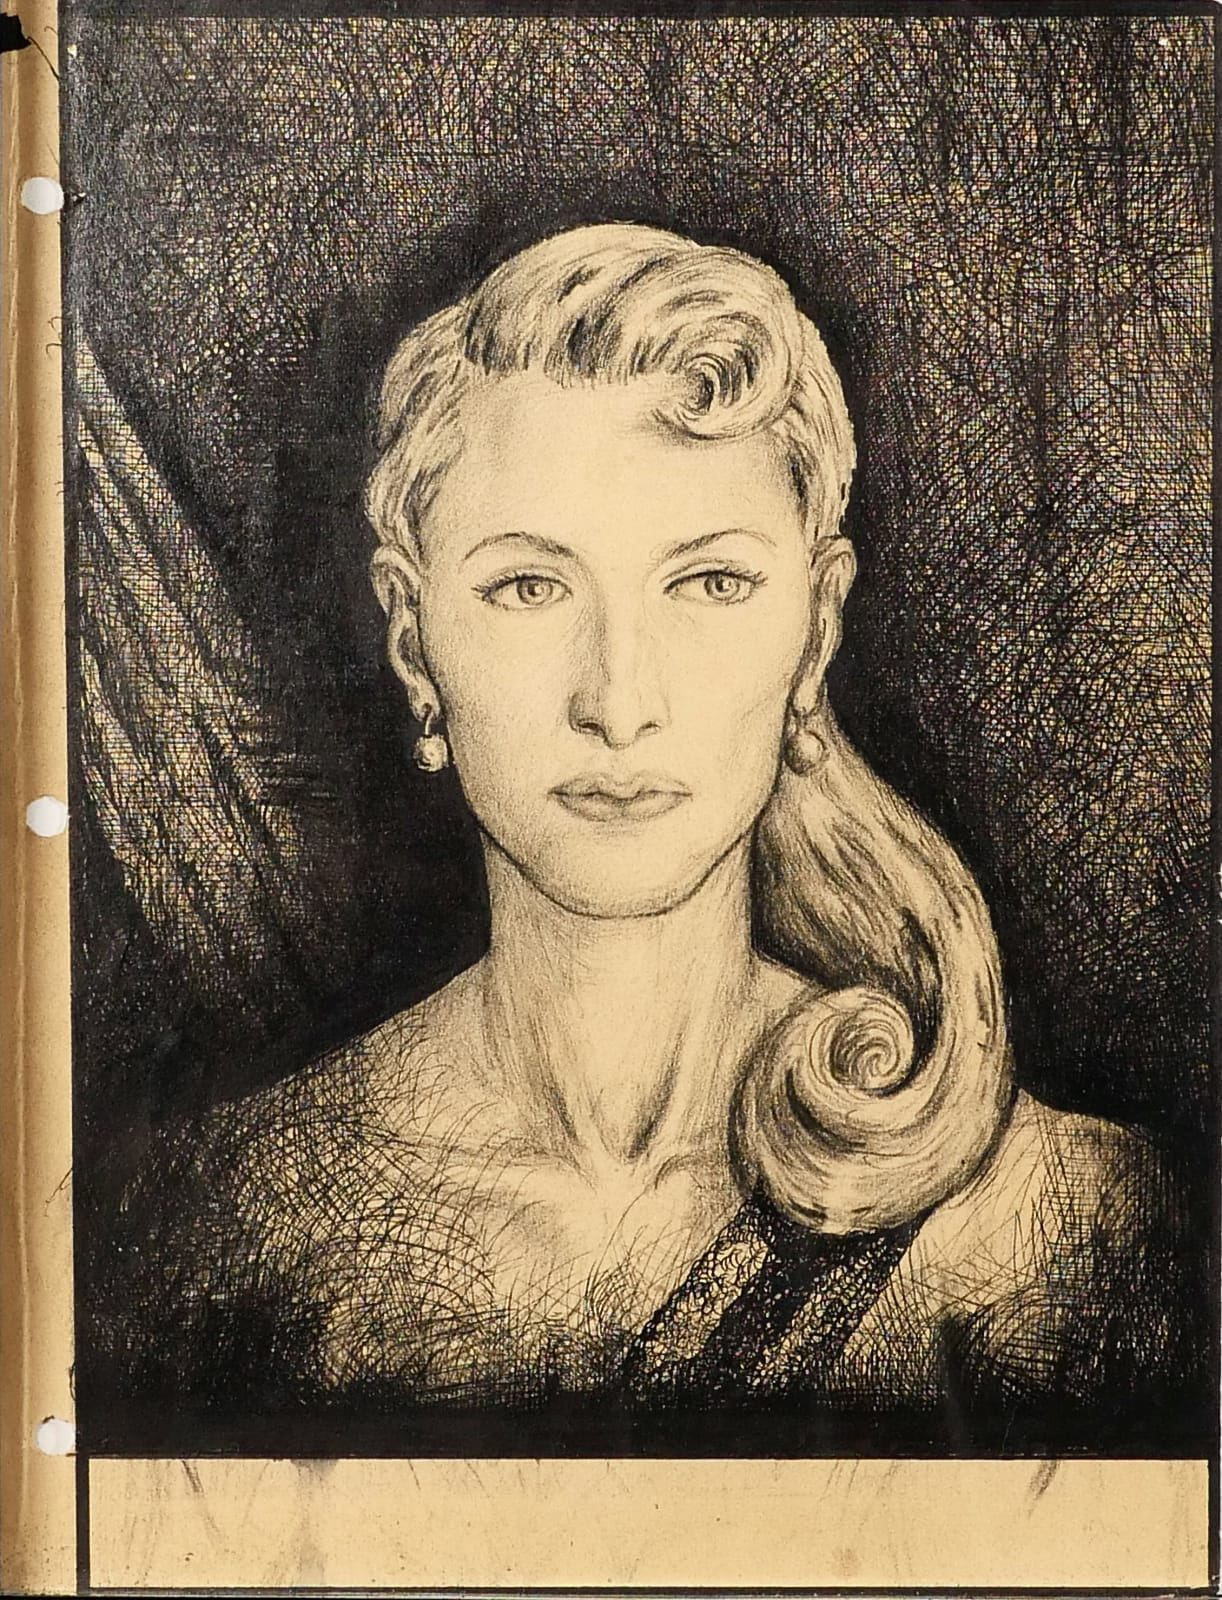 Julia Lindahl, head of Rocaterranian Youth Administration Girls Auxiliary, 1959 Black ink on sketch paper 11 x 8 1/2 in. (RK 131) $7,000